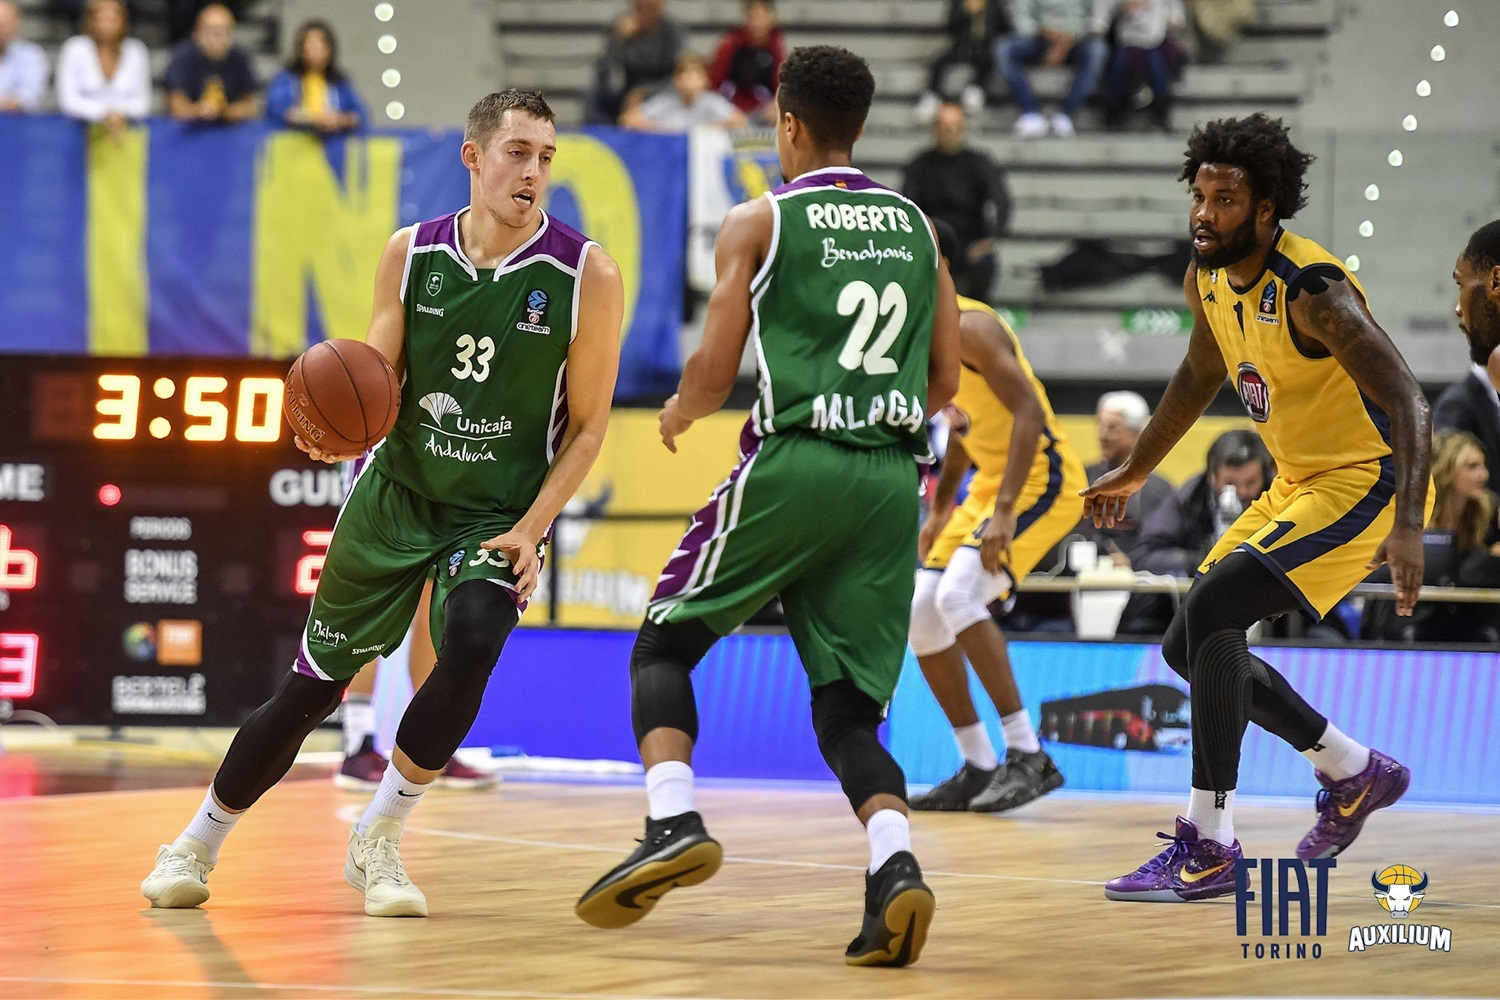 Kyle Wiltjer - Unicaja Malaga (photo Fiat Turin) - EC18